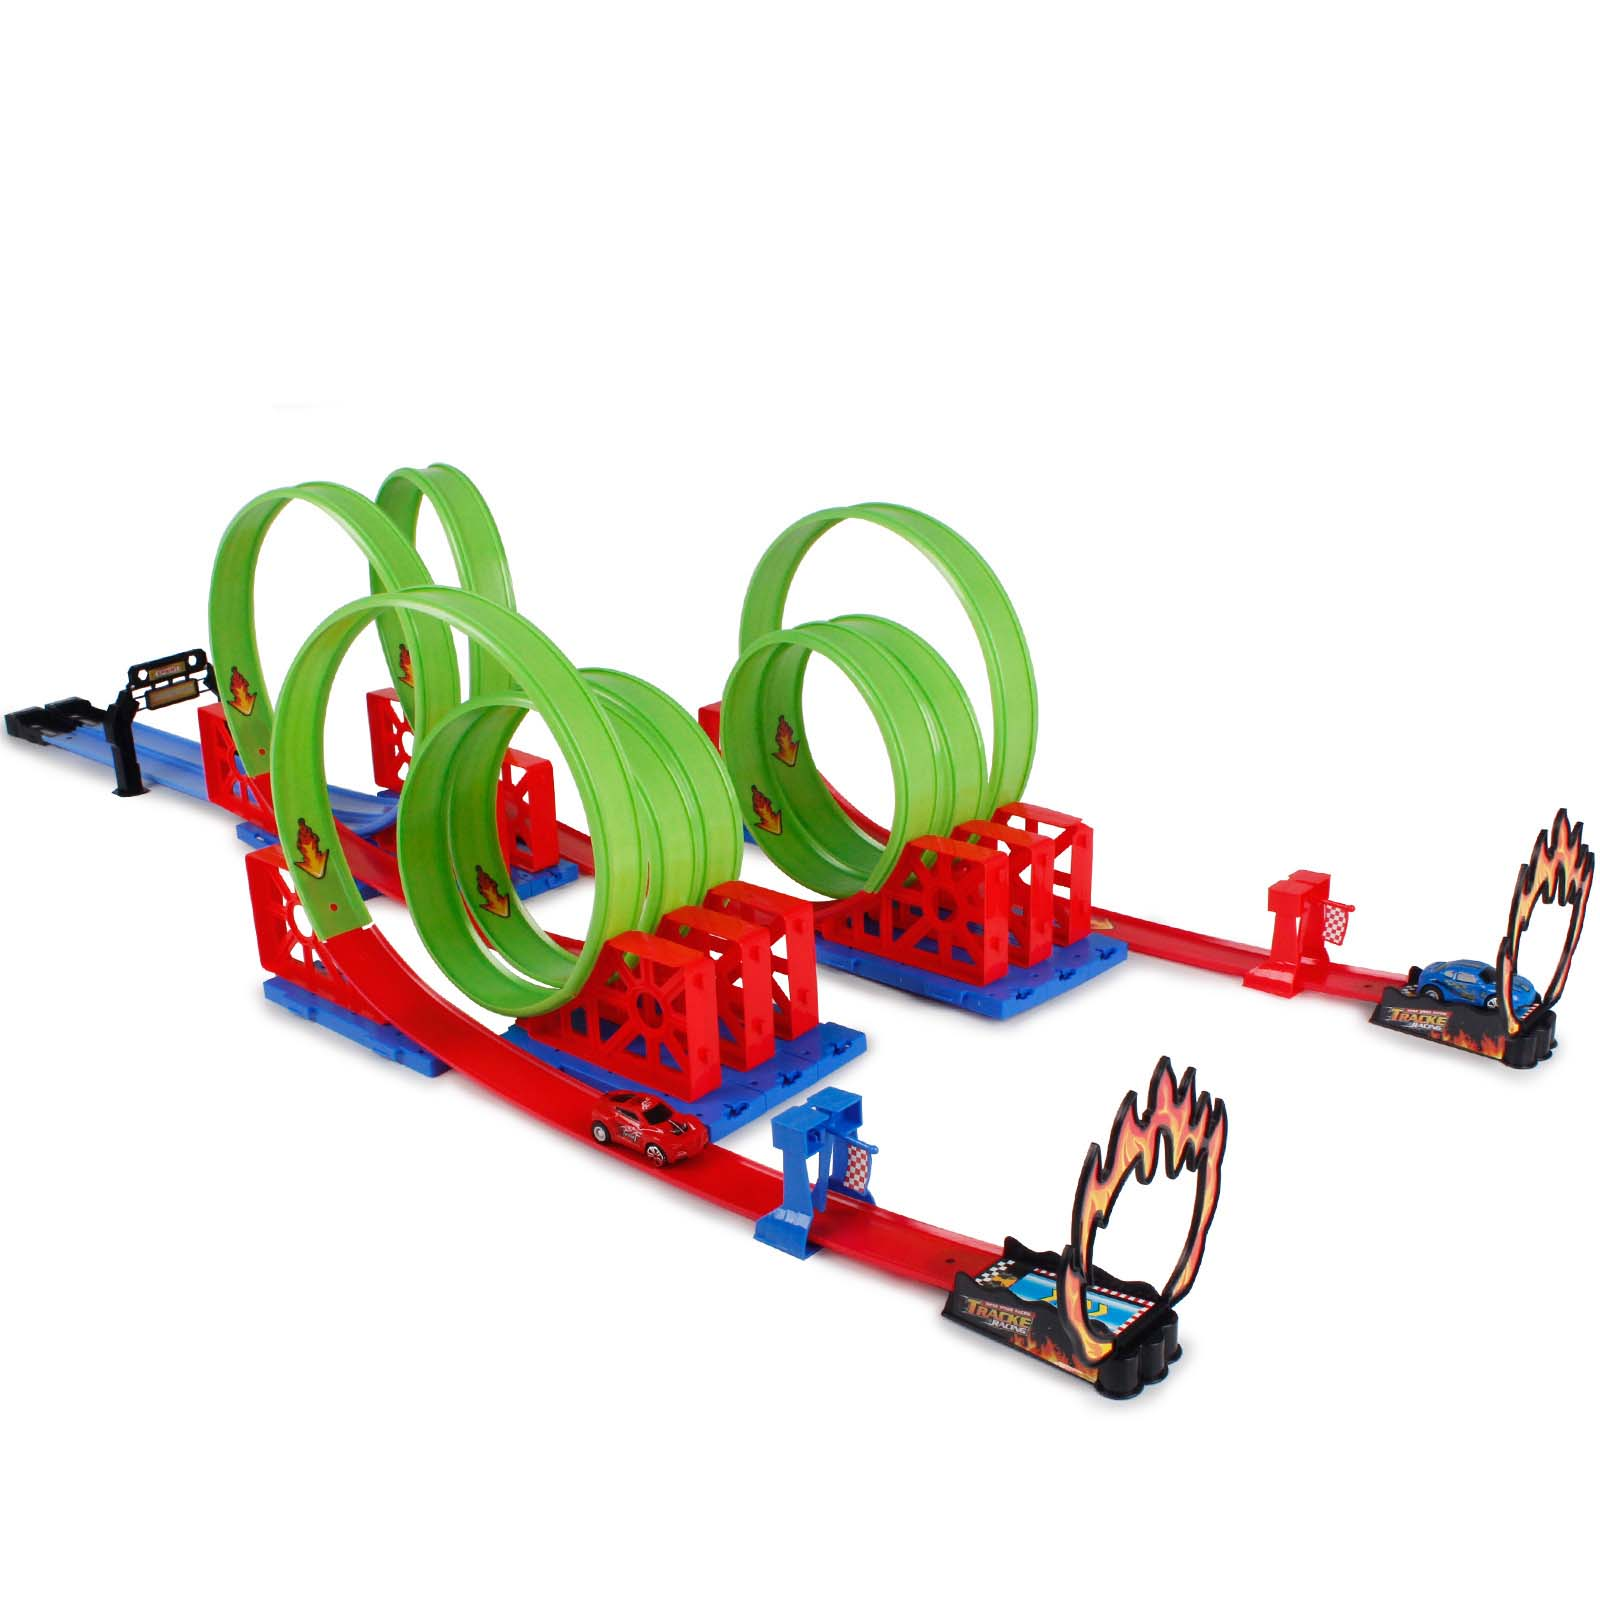 Hot Wheels roundabout track toy model cars classic car toy birthday gift for kids Pista Hotwheels Juguetes W5093